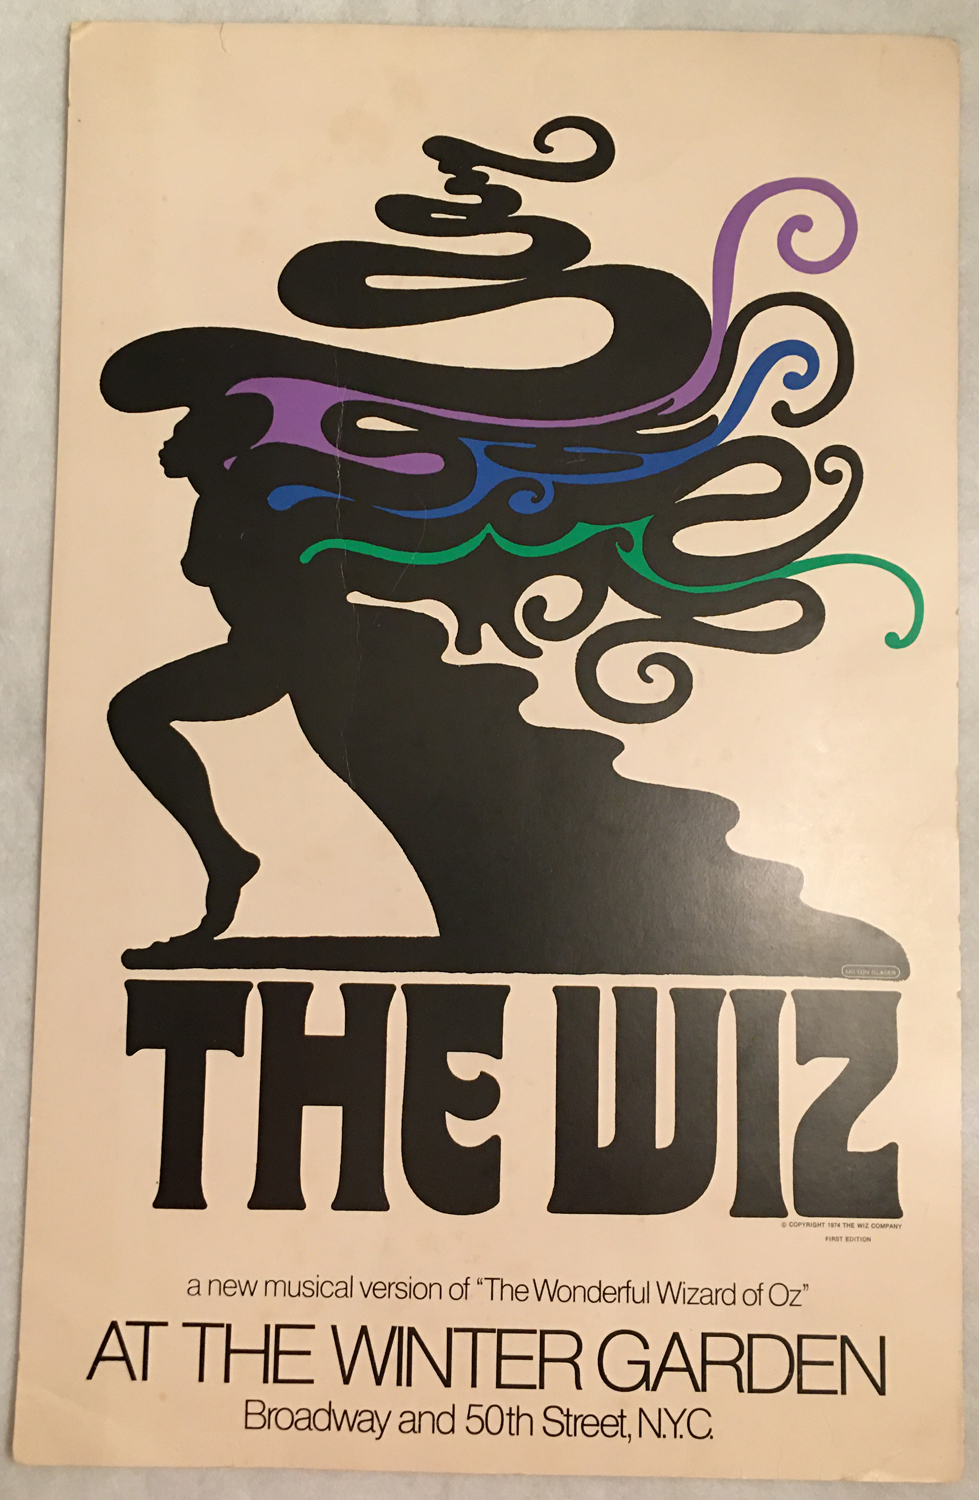 Image for The Wiz, Poster, At the Winter Garden, New York City, 1974, First Edition